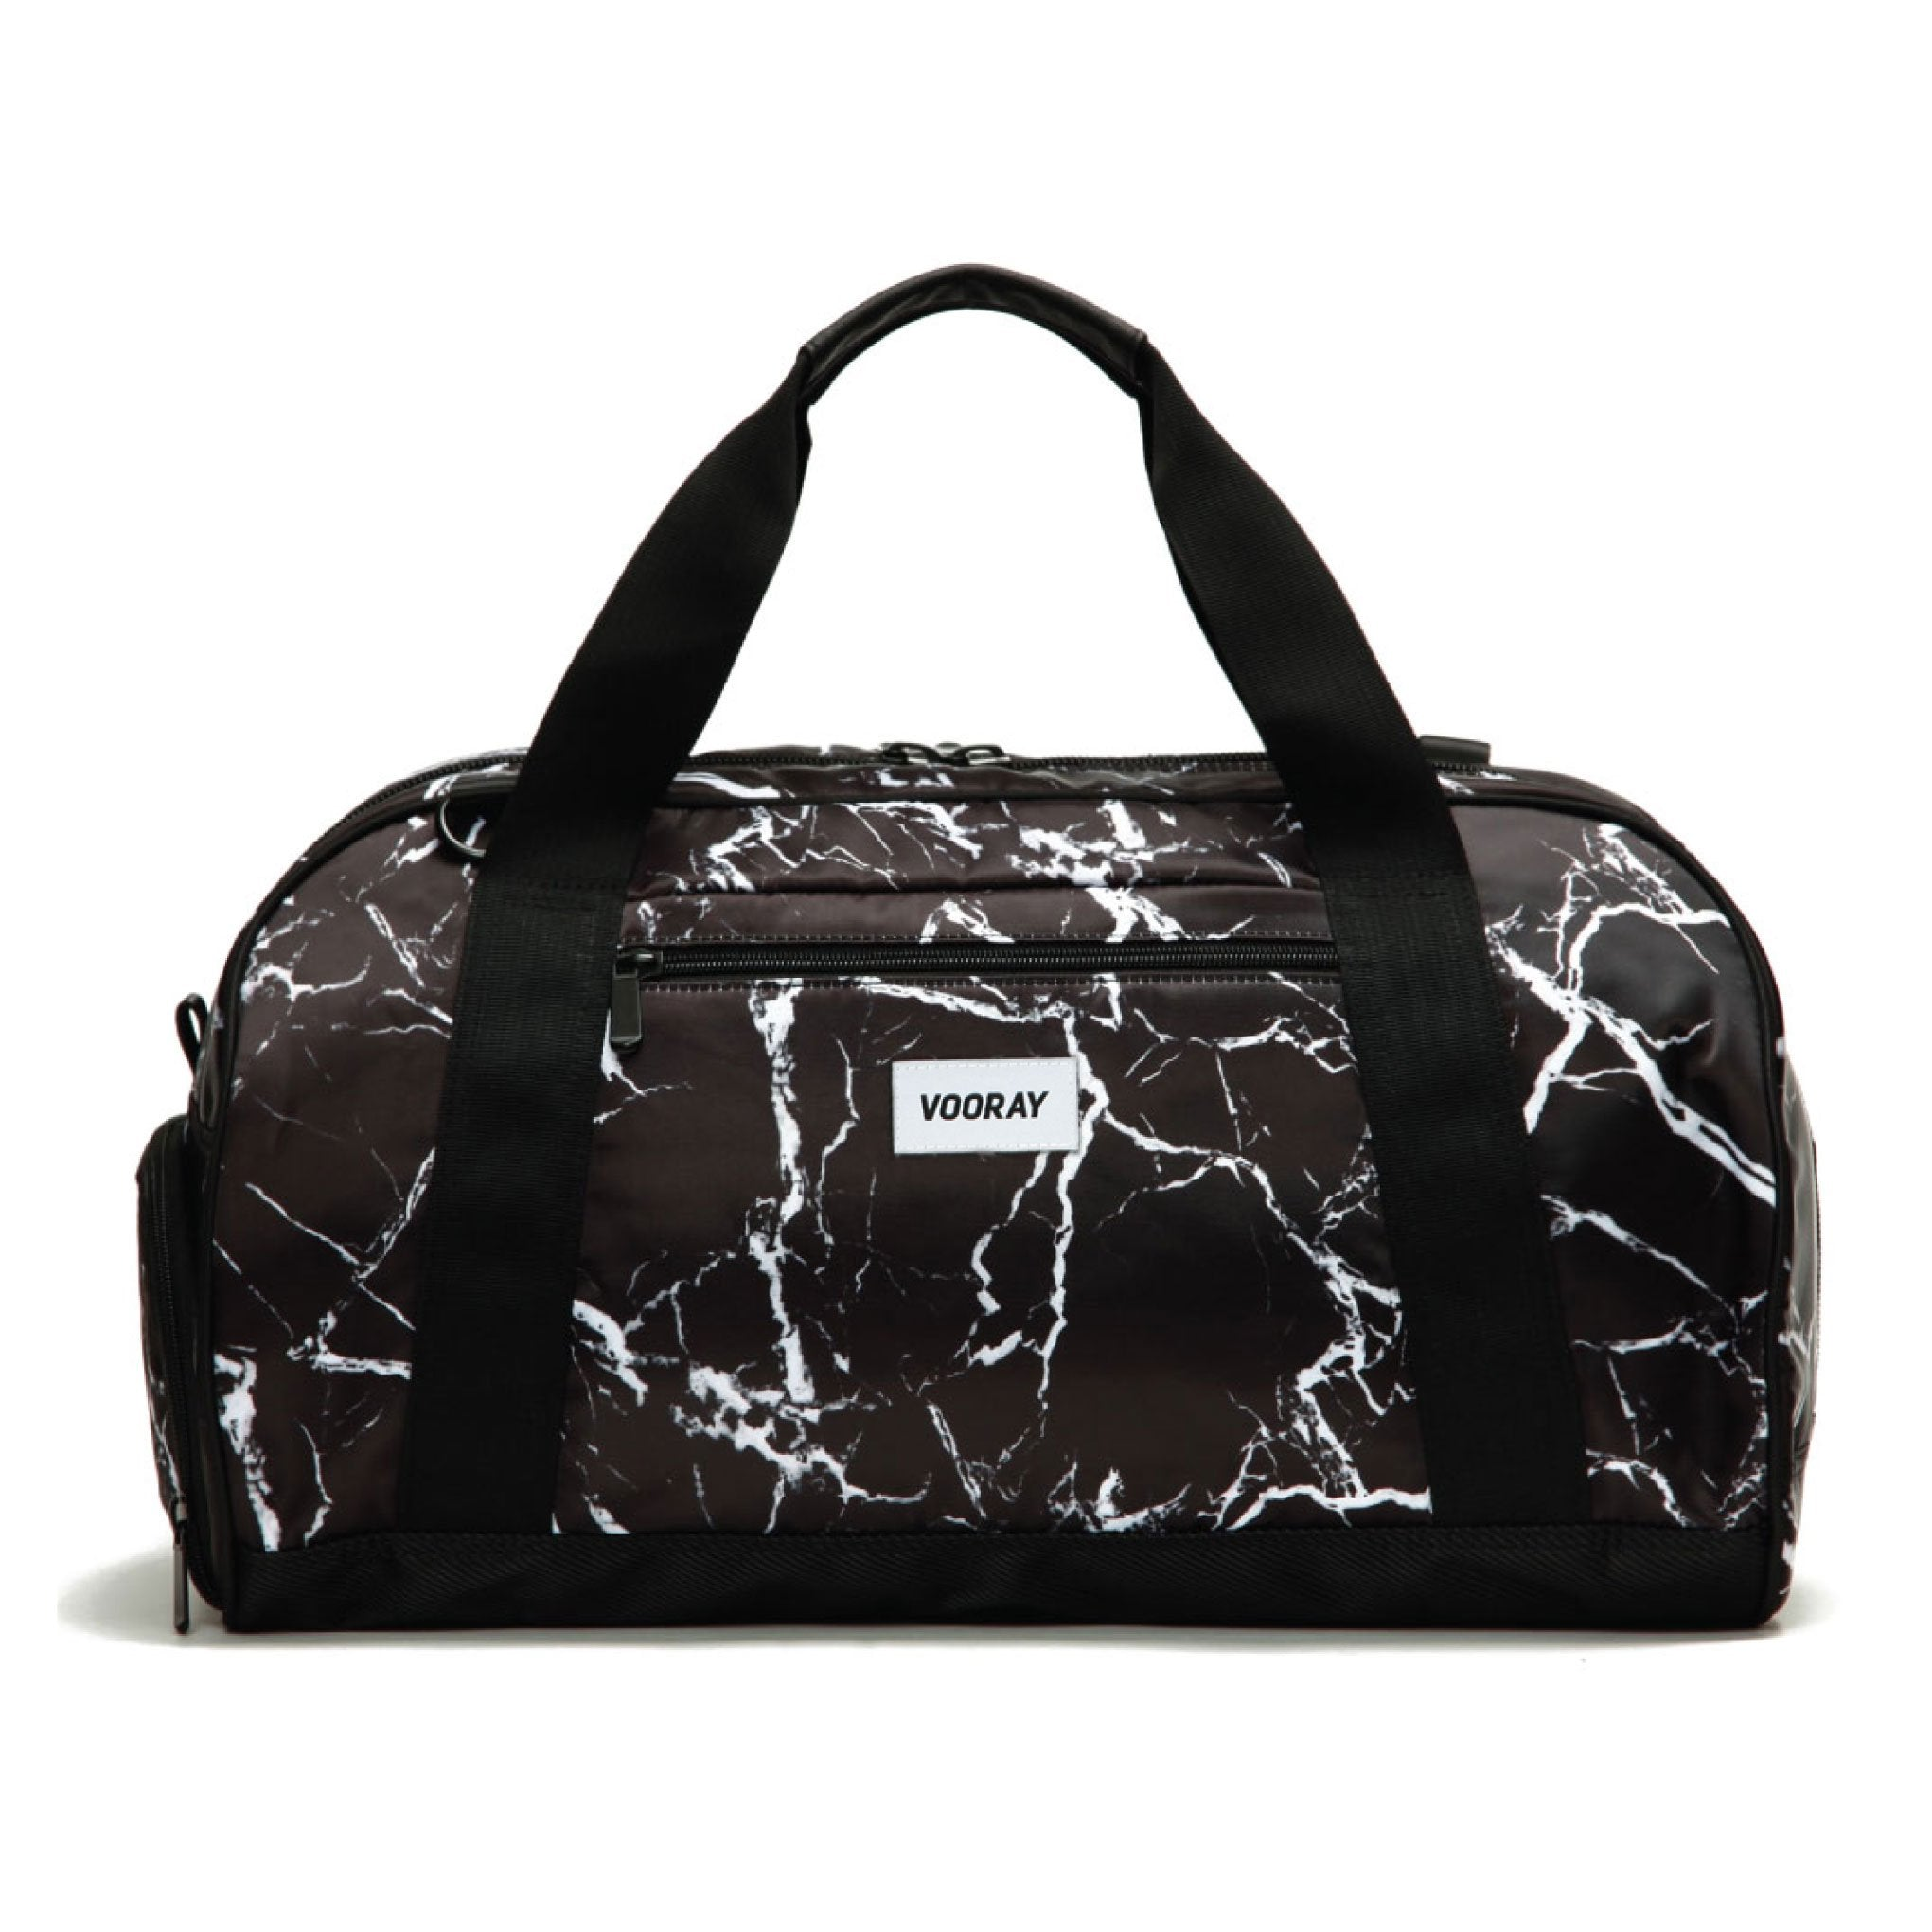 Burner Sport Duffle Large - Black Marble